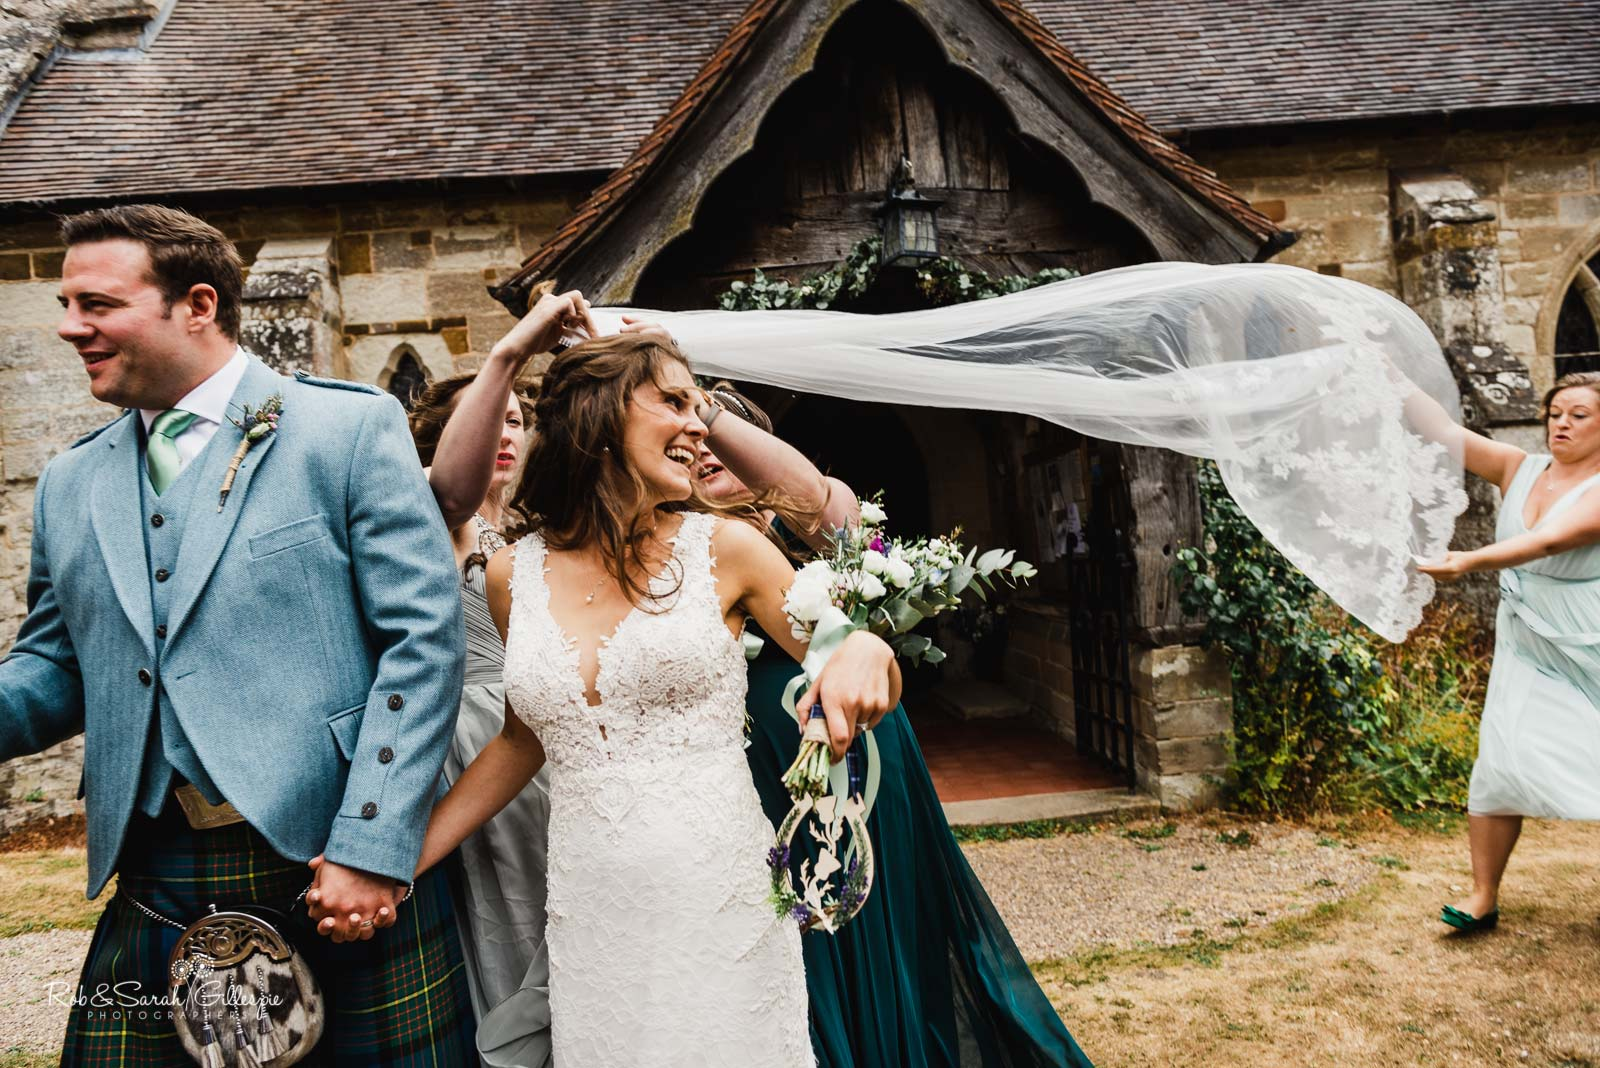 Natural wedding photography at St Giles church Packwood